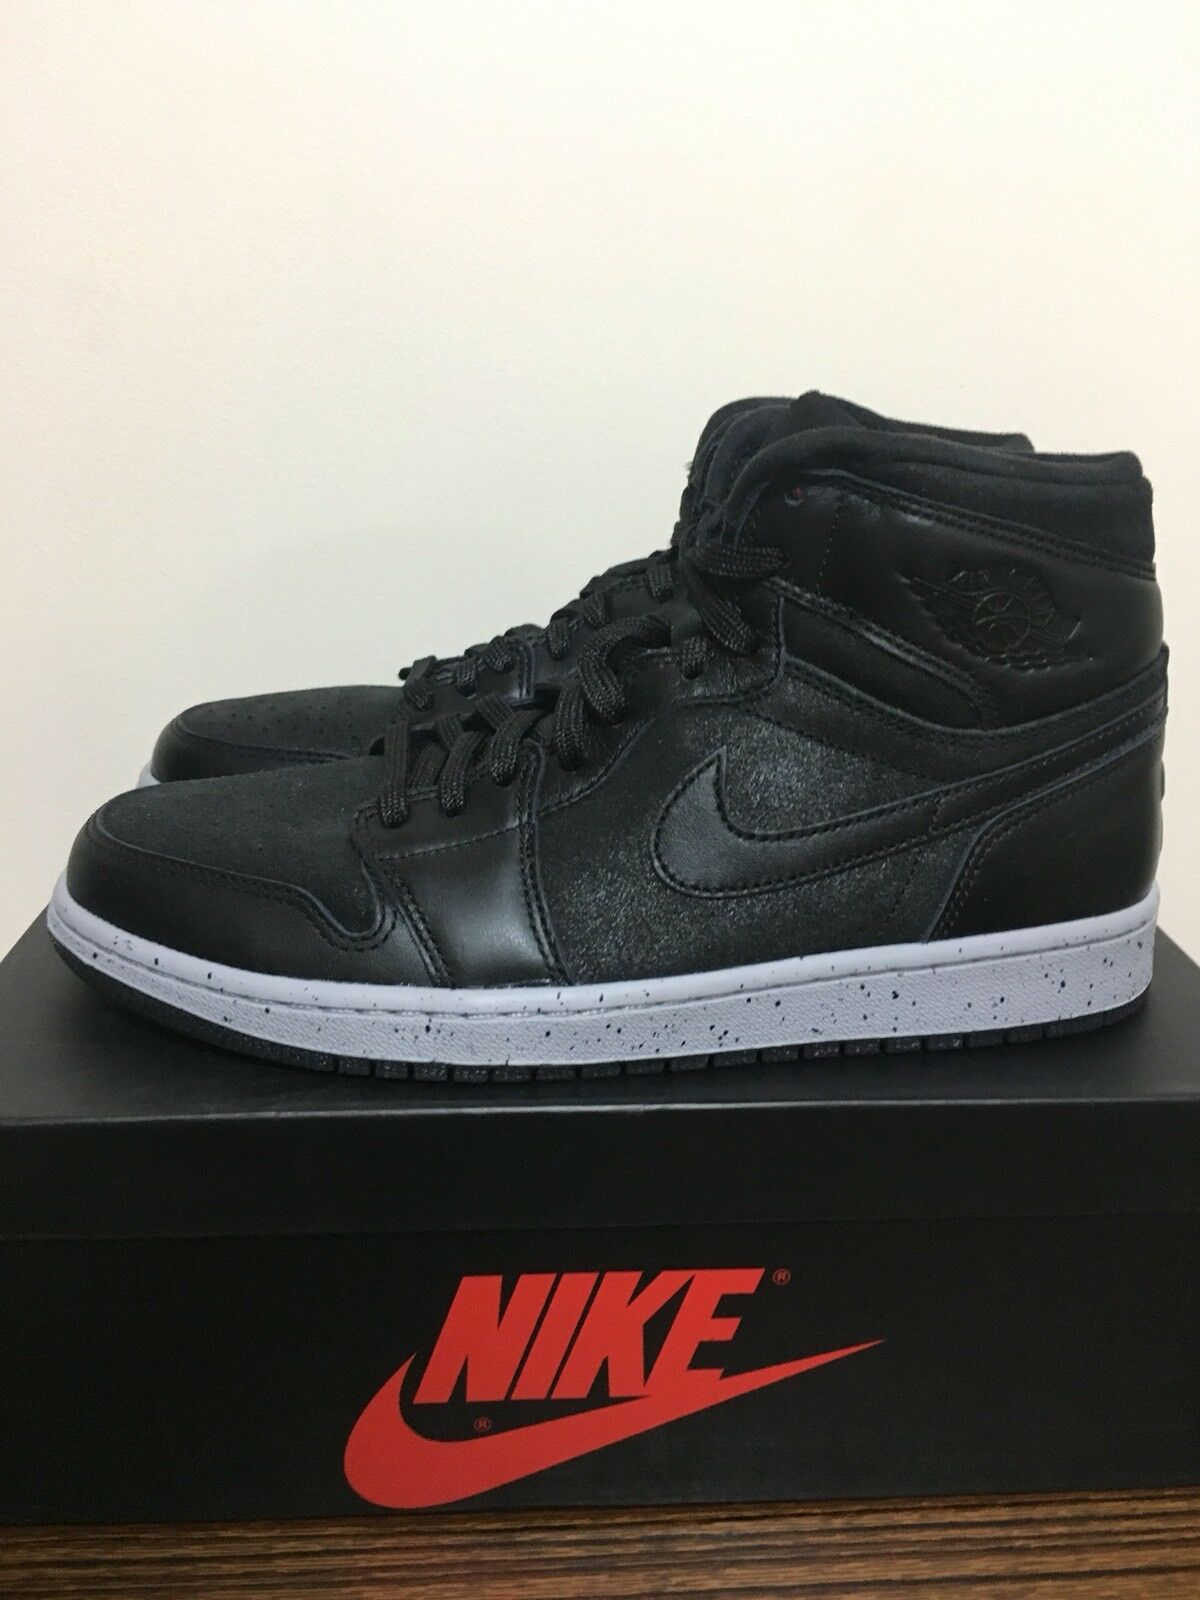 Nike Air Jordan Retro 1 I Hi OG Flight 23 NYC Sneakers New, Black Red 715060-002